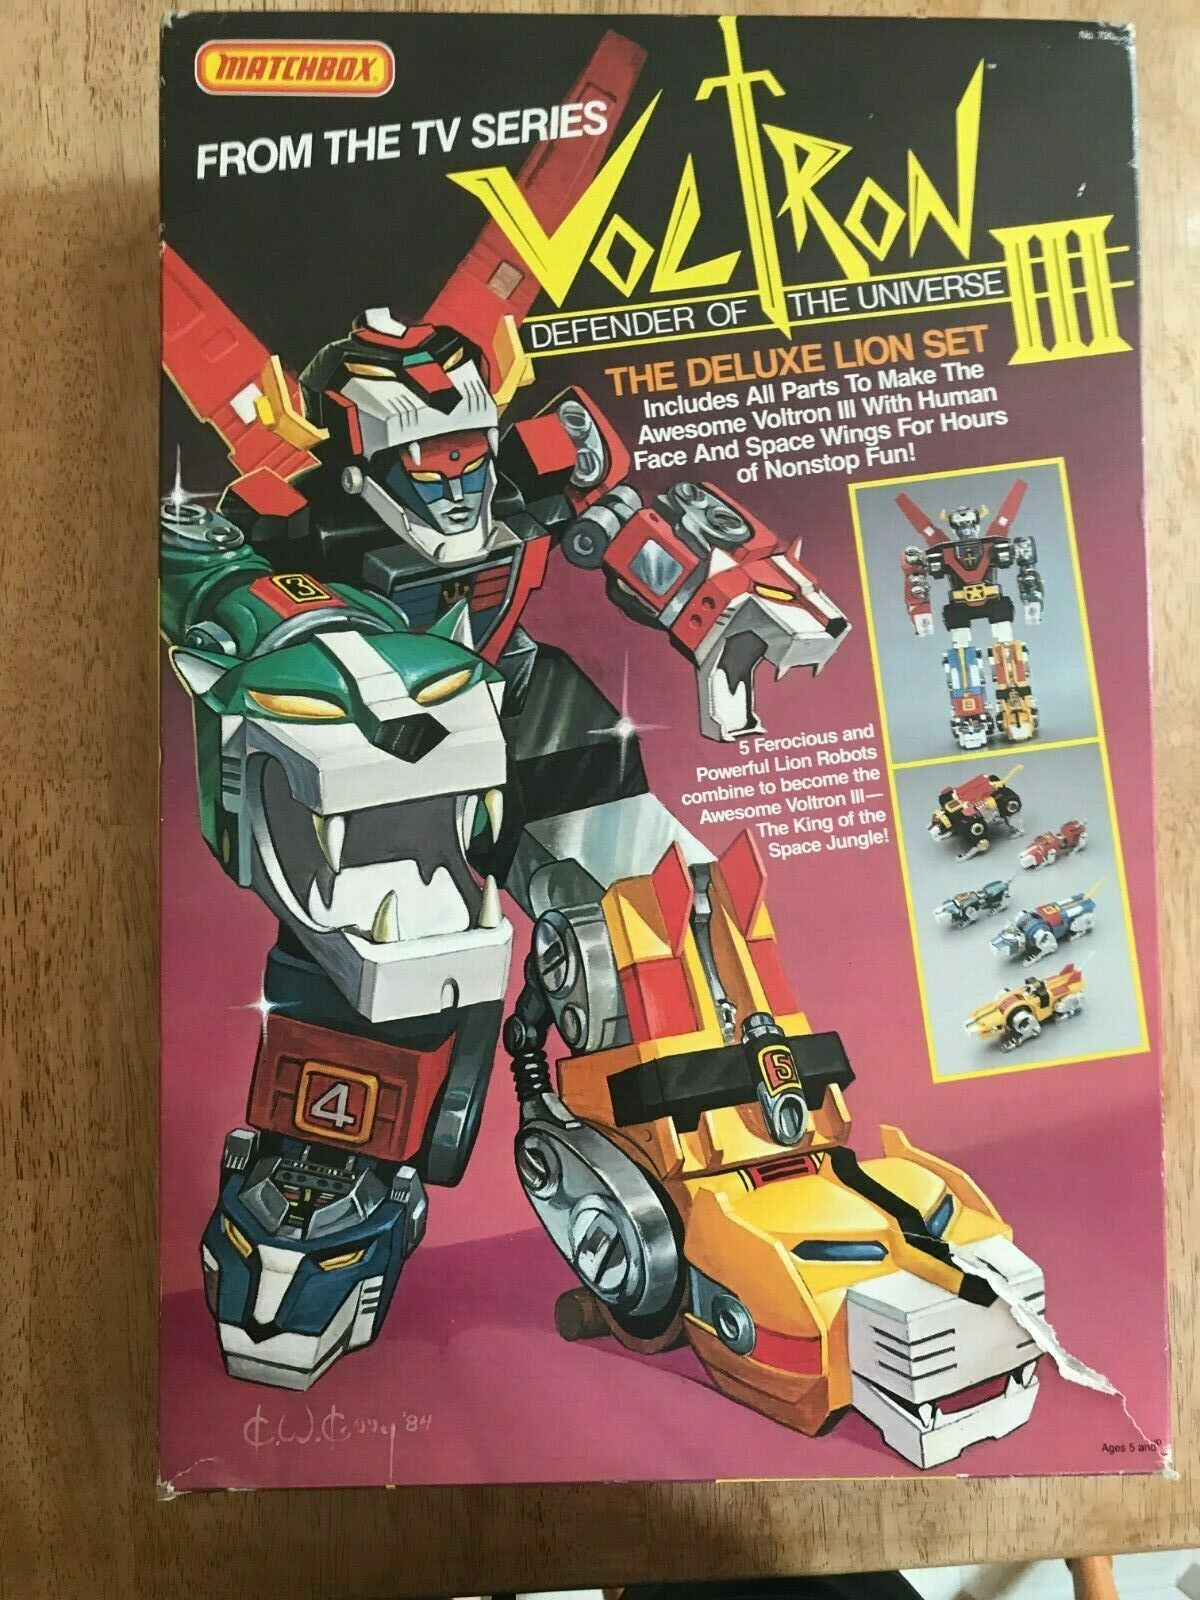 Voltron III Defender of the Universe Vintage 1984 Deluxe LIon set with scatola